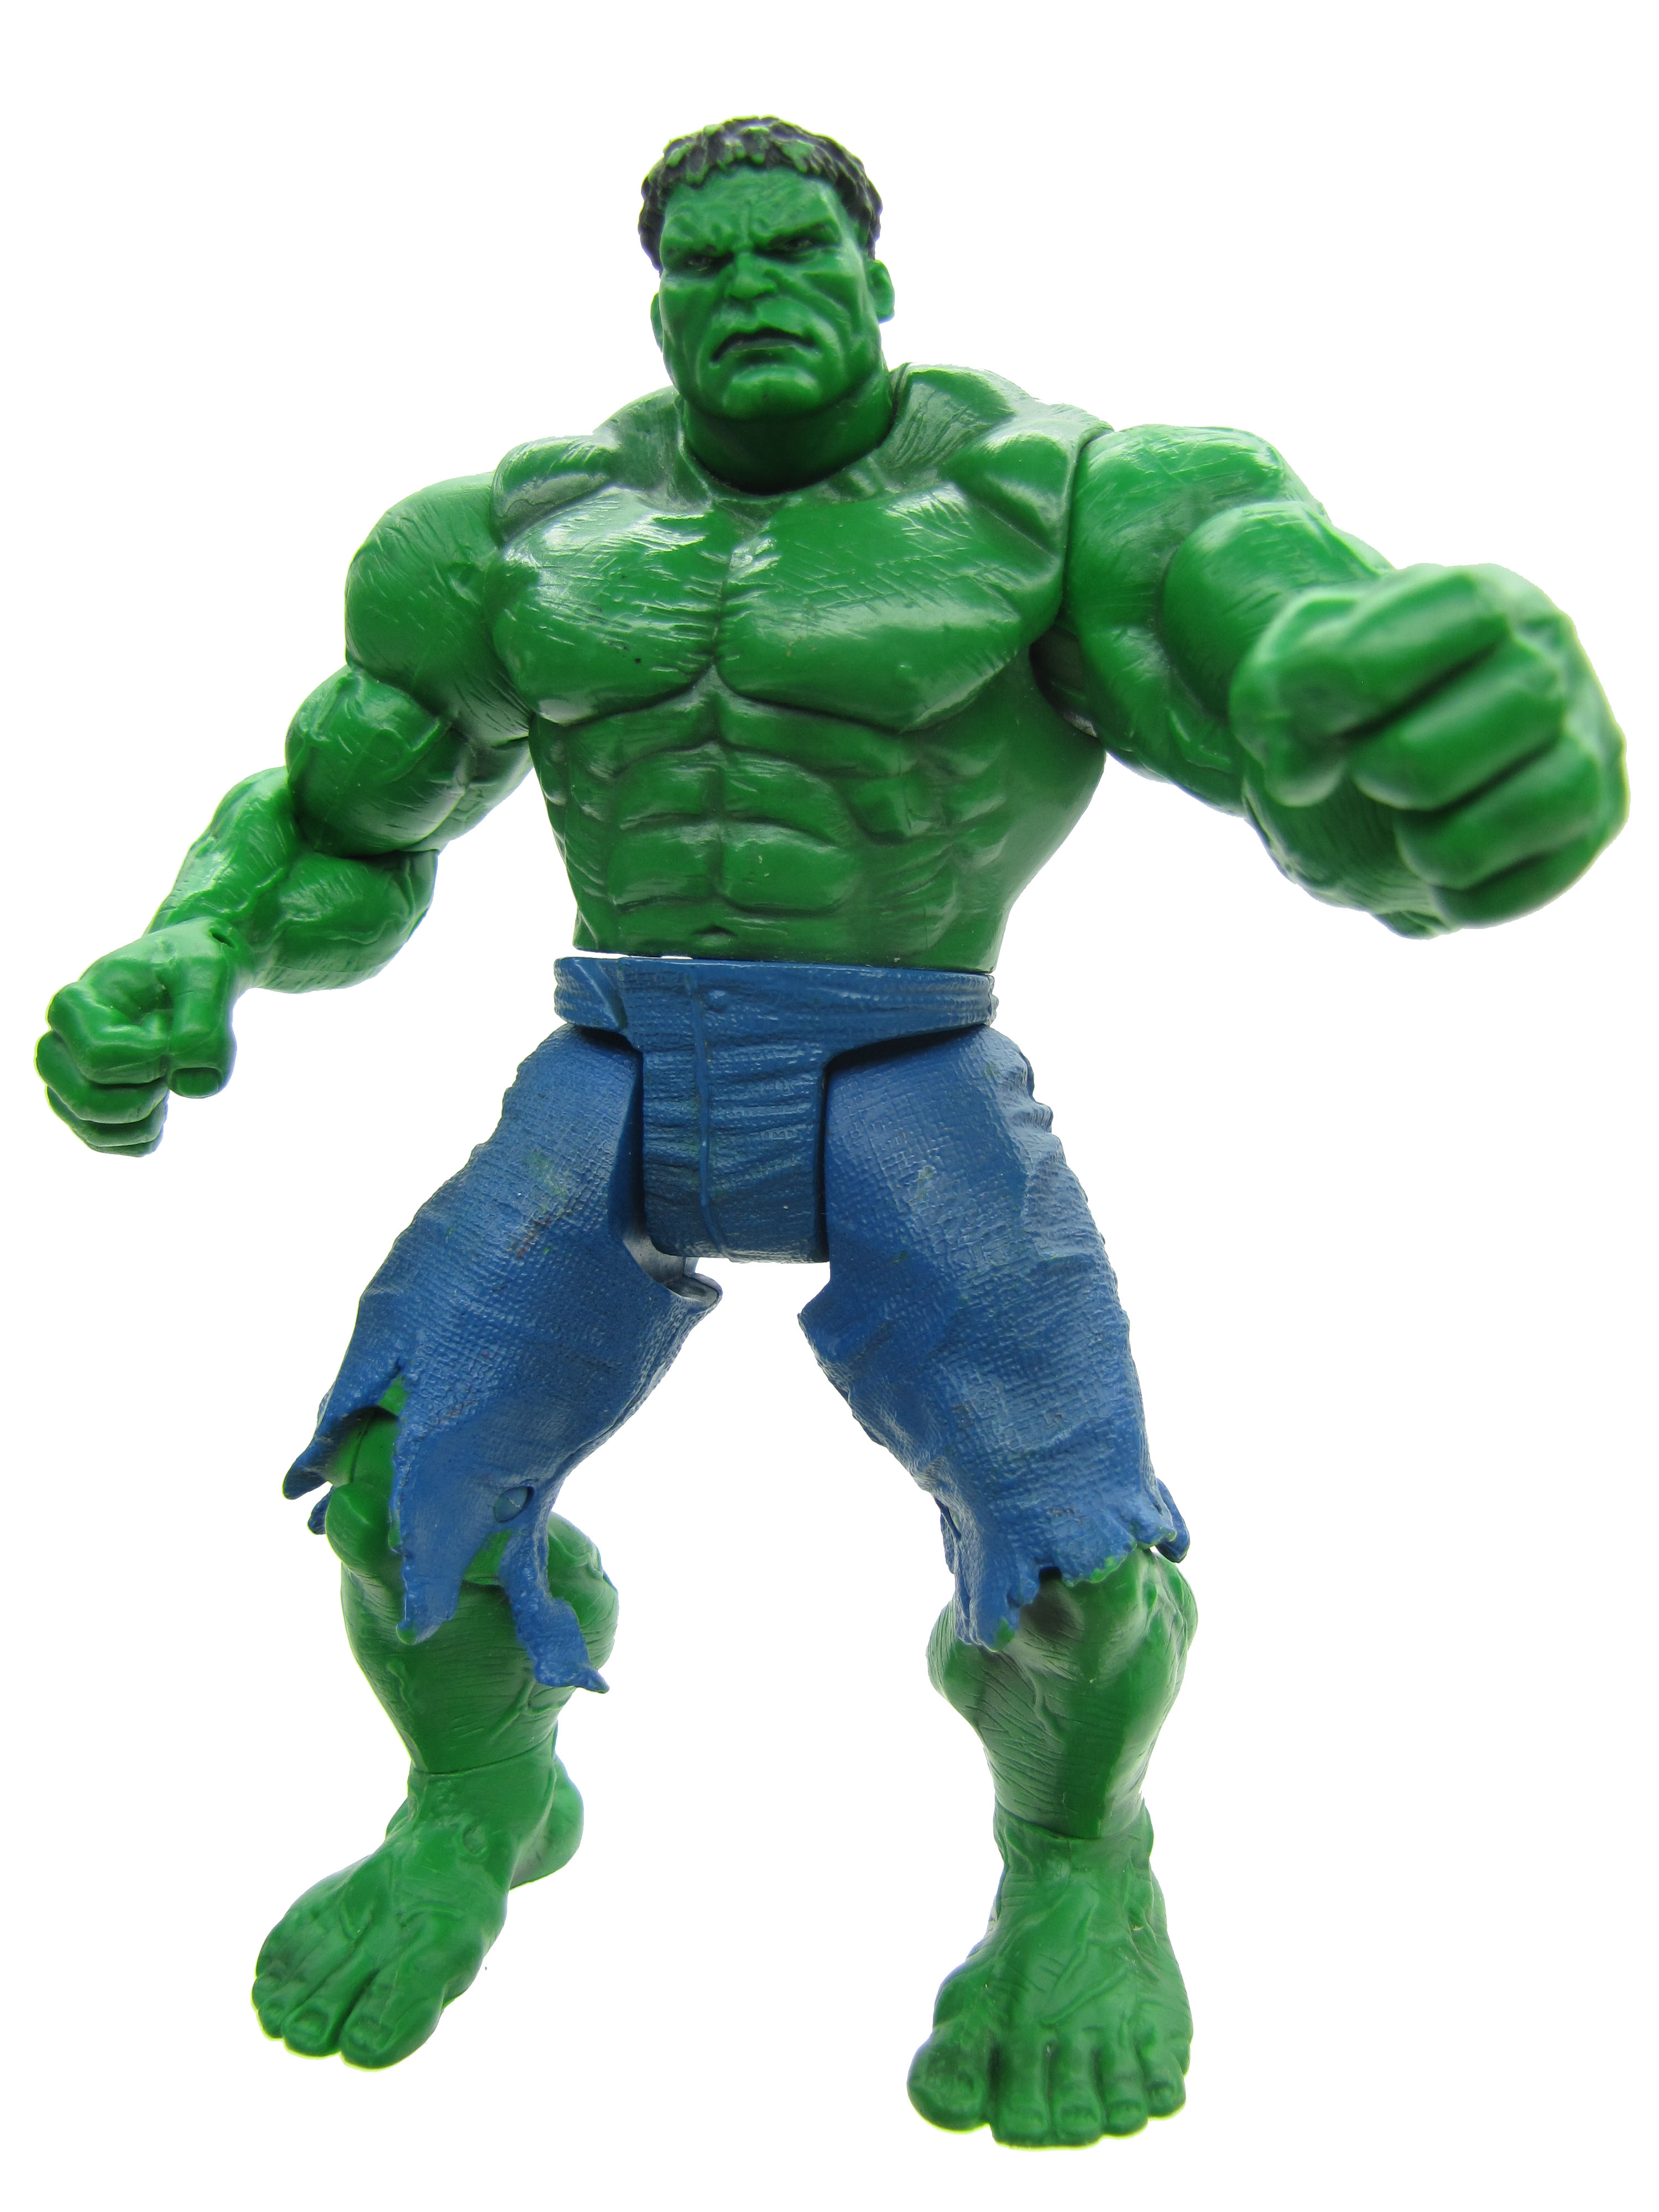 2002 The Incredible Hulk Punching Hulk